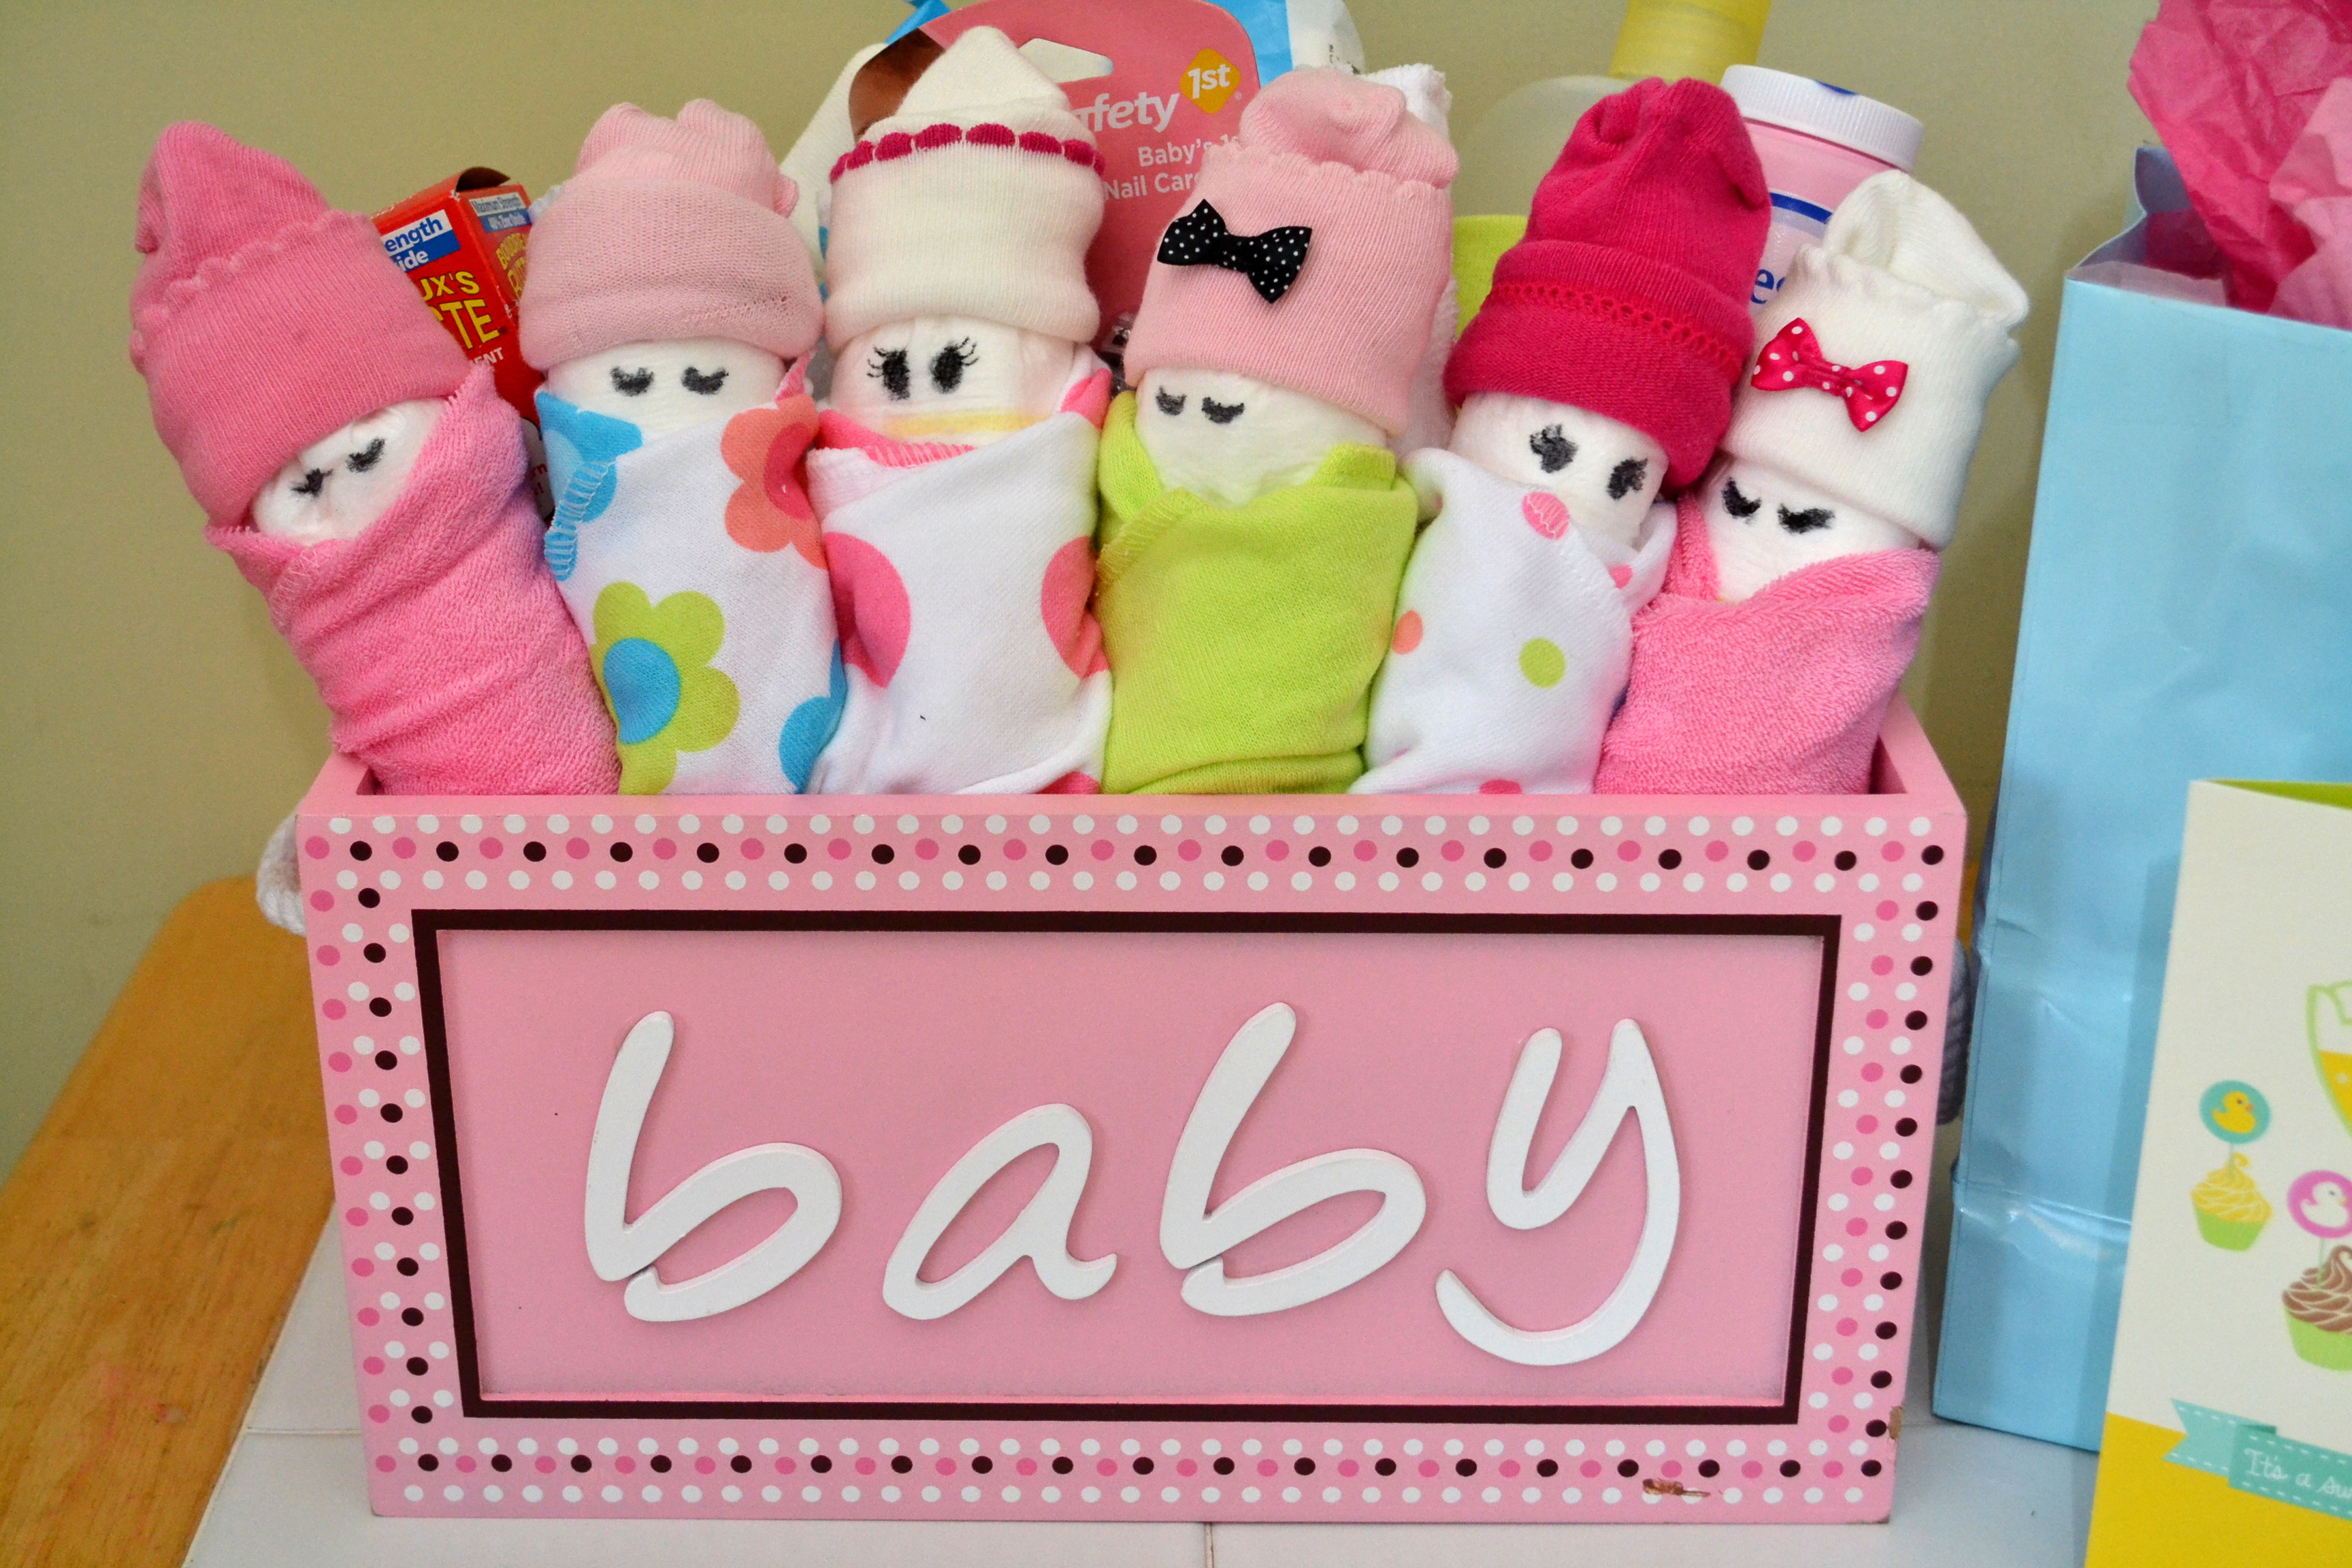 Best ideas about Baby Shower DIY . Save or Pin Essential Baby Shower Gifts & DIY Diaper Babies Now.